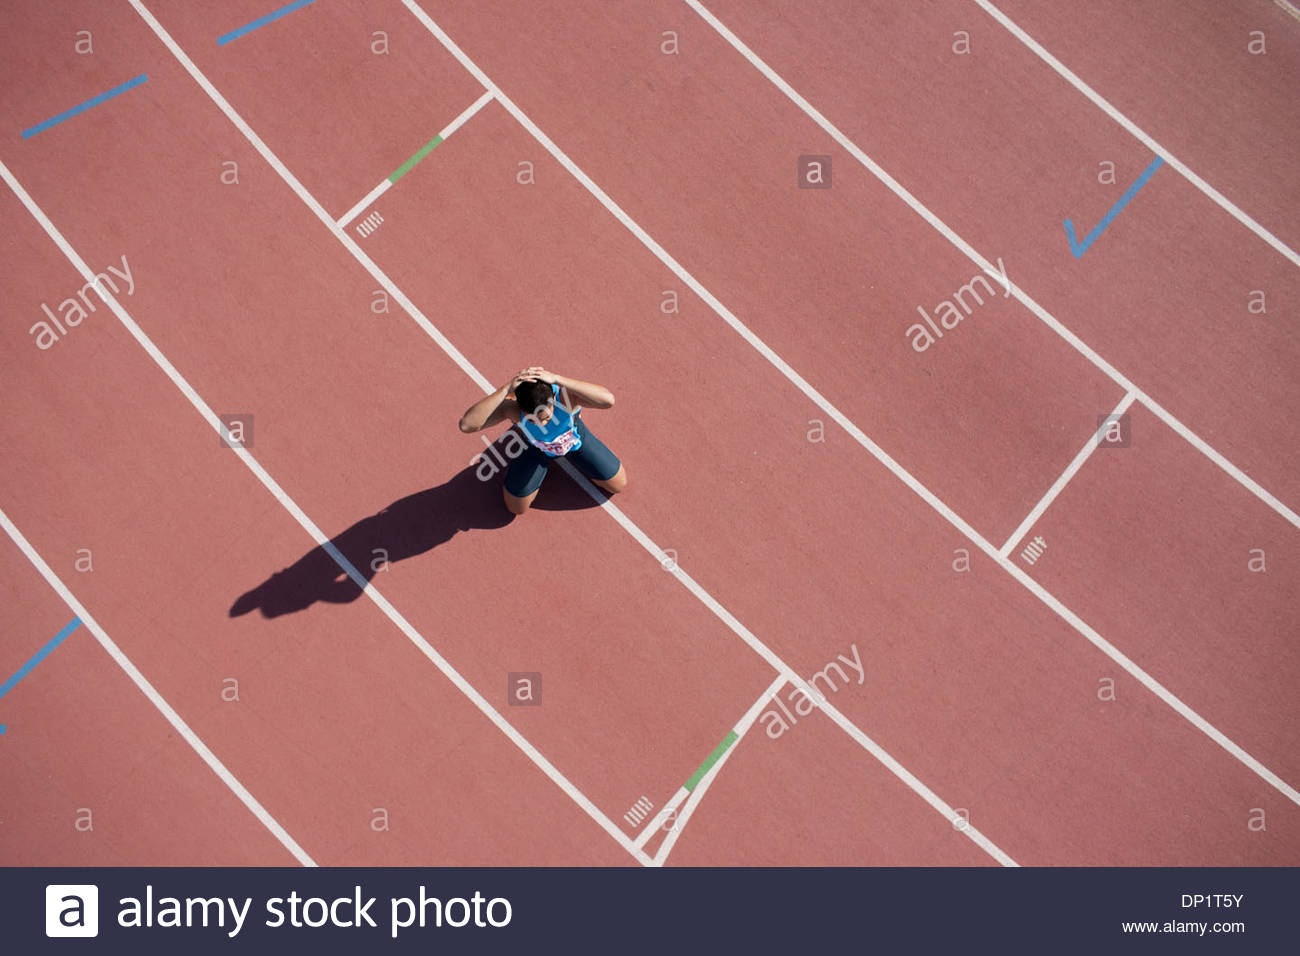 Disappointed runner kneeling on track - Stock Image